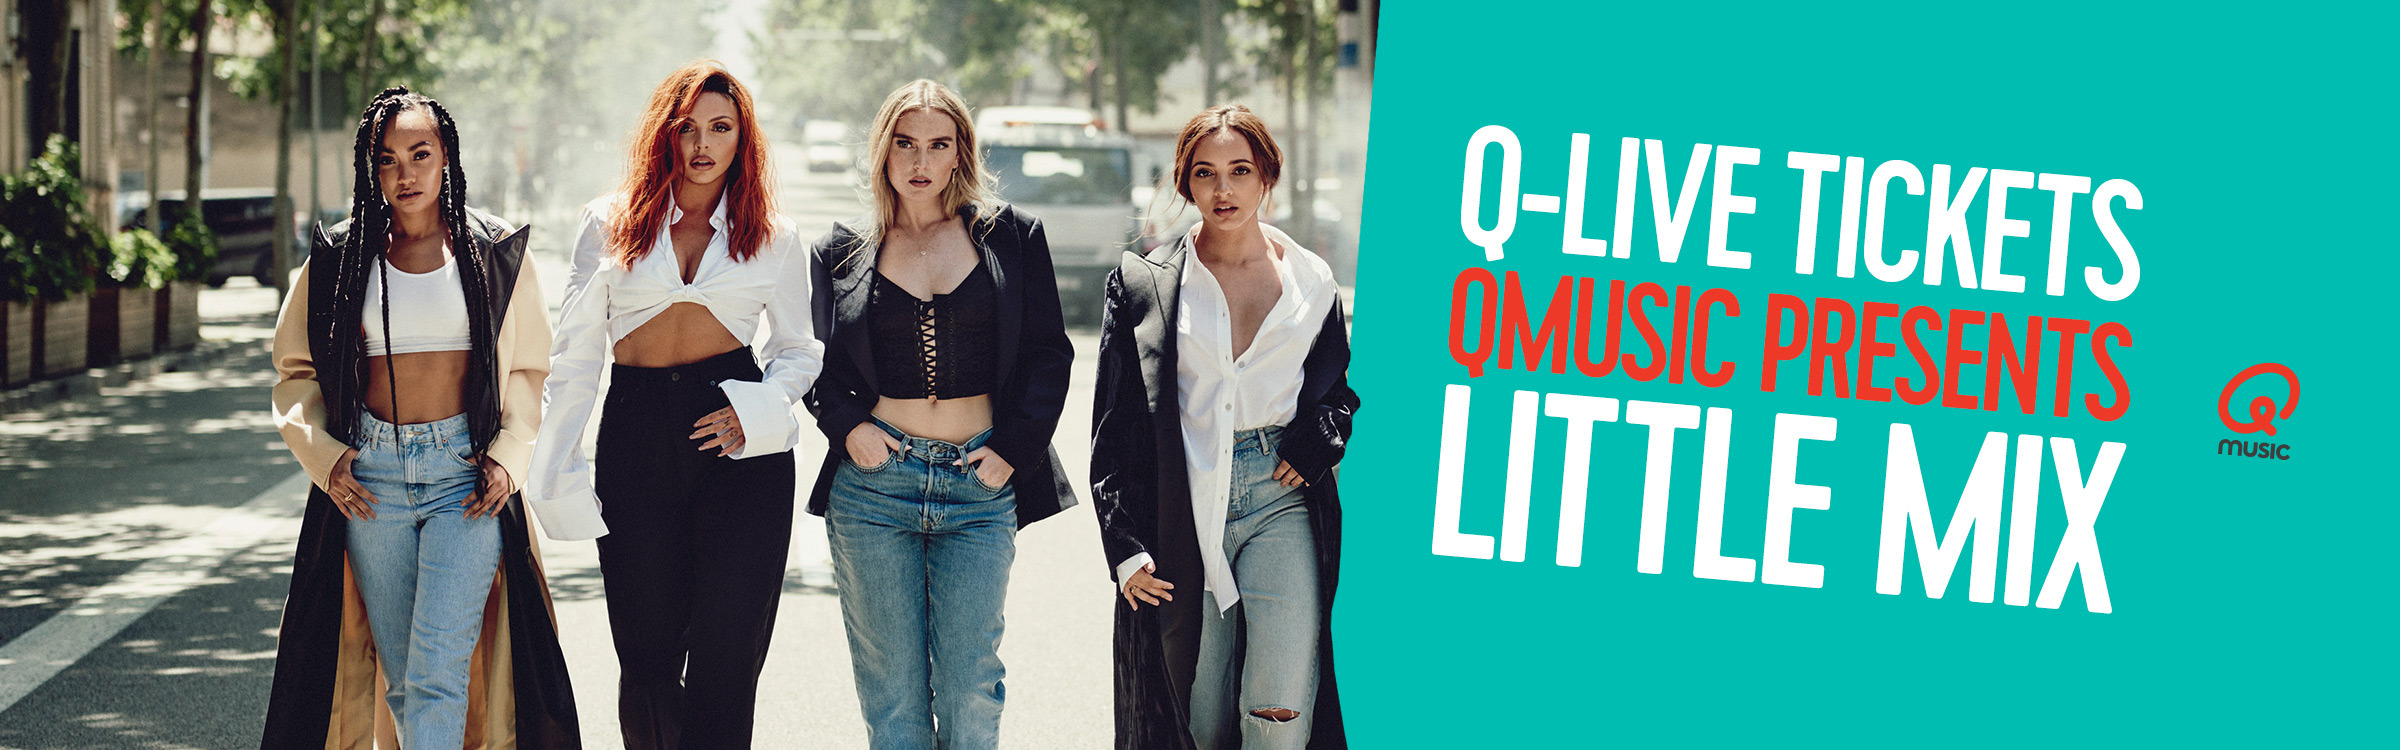 Qmusic actionheader littlemix